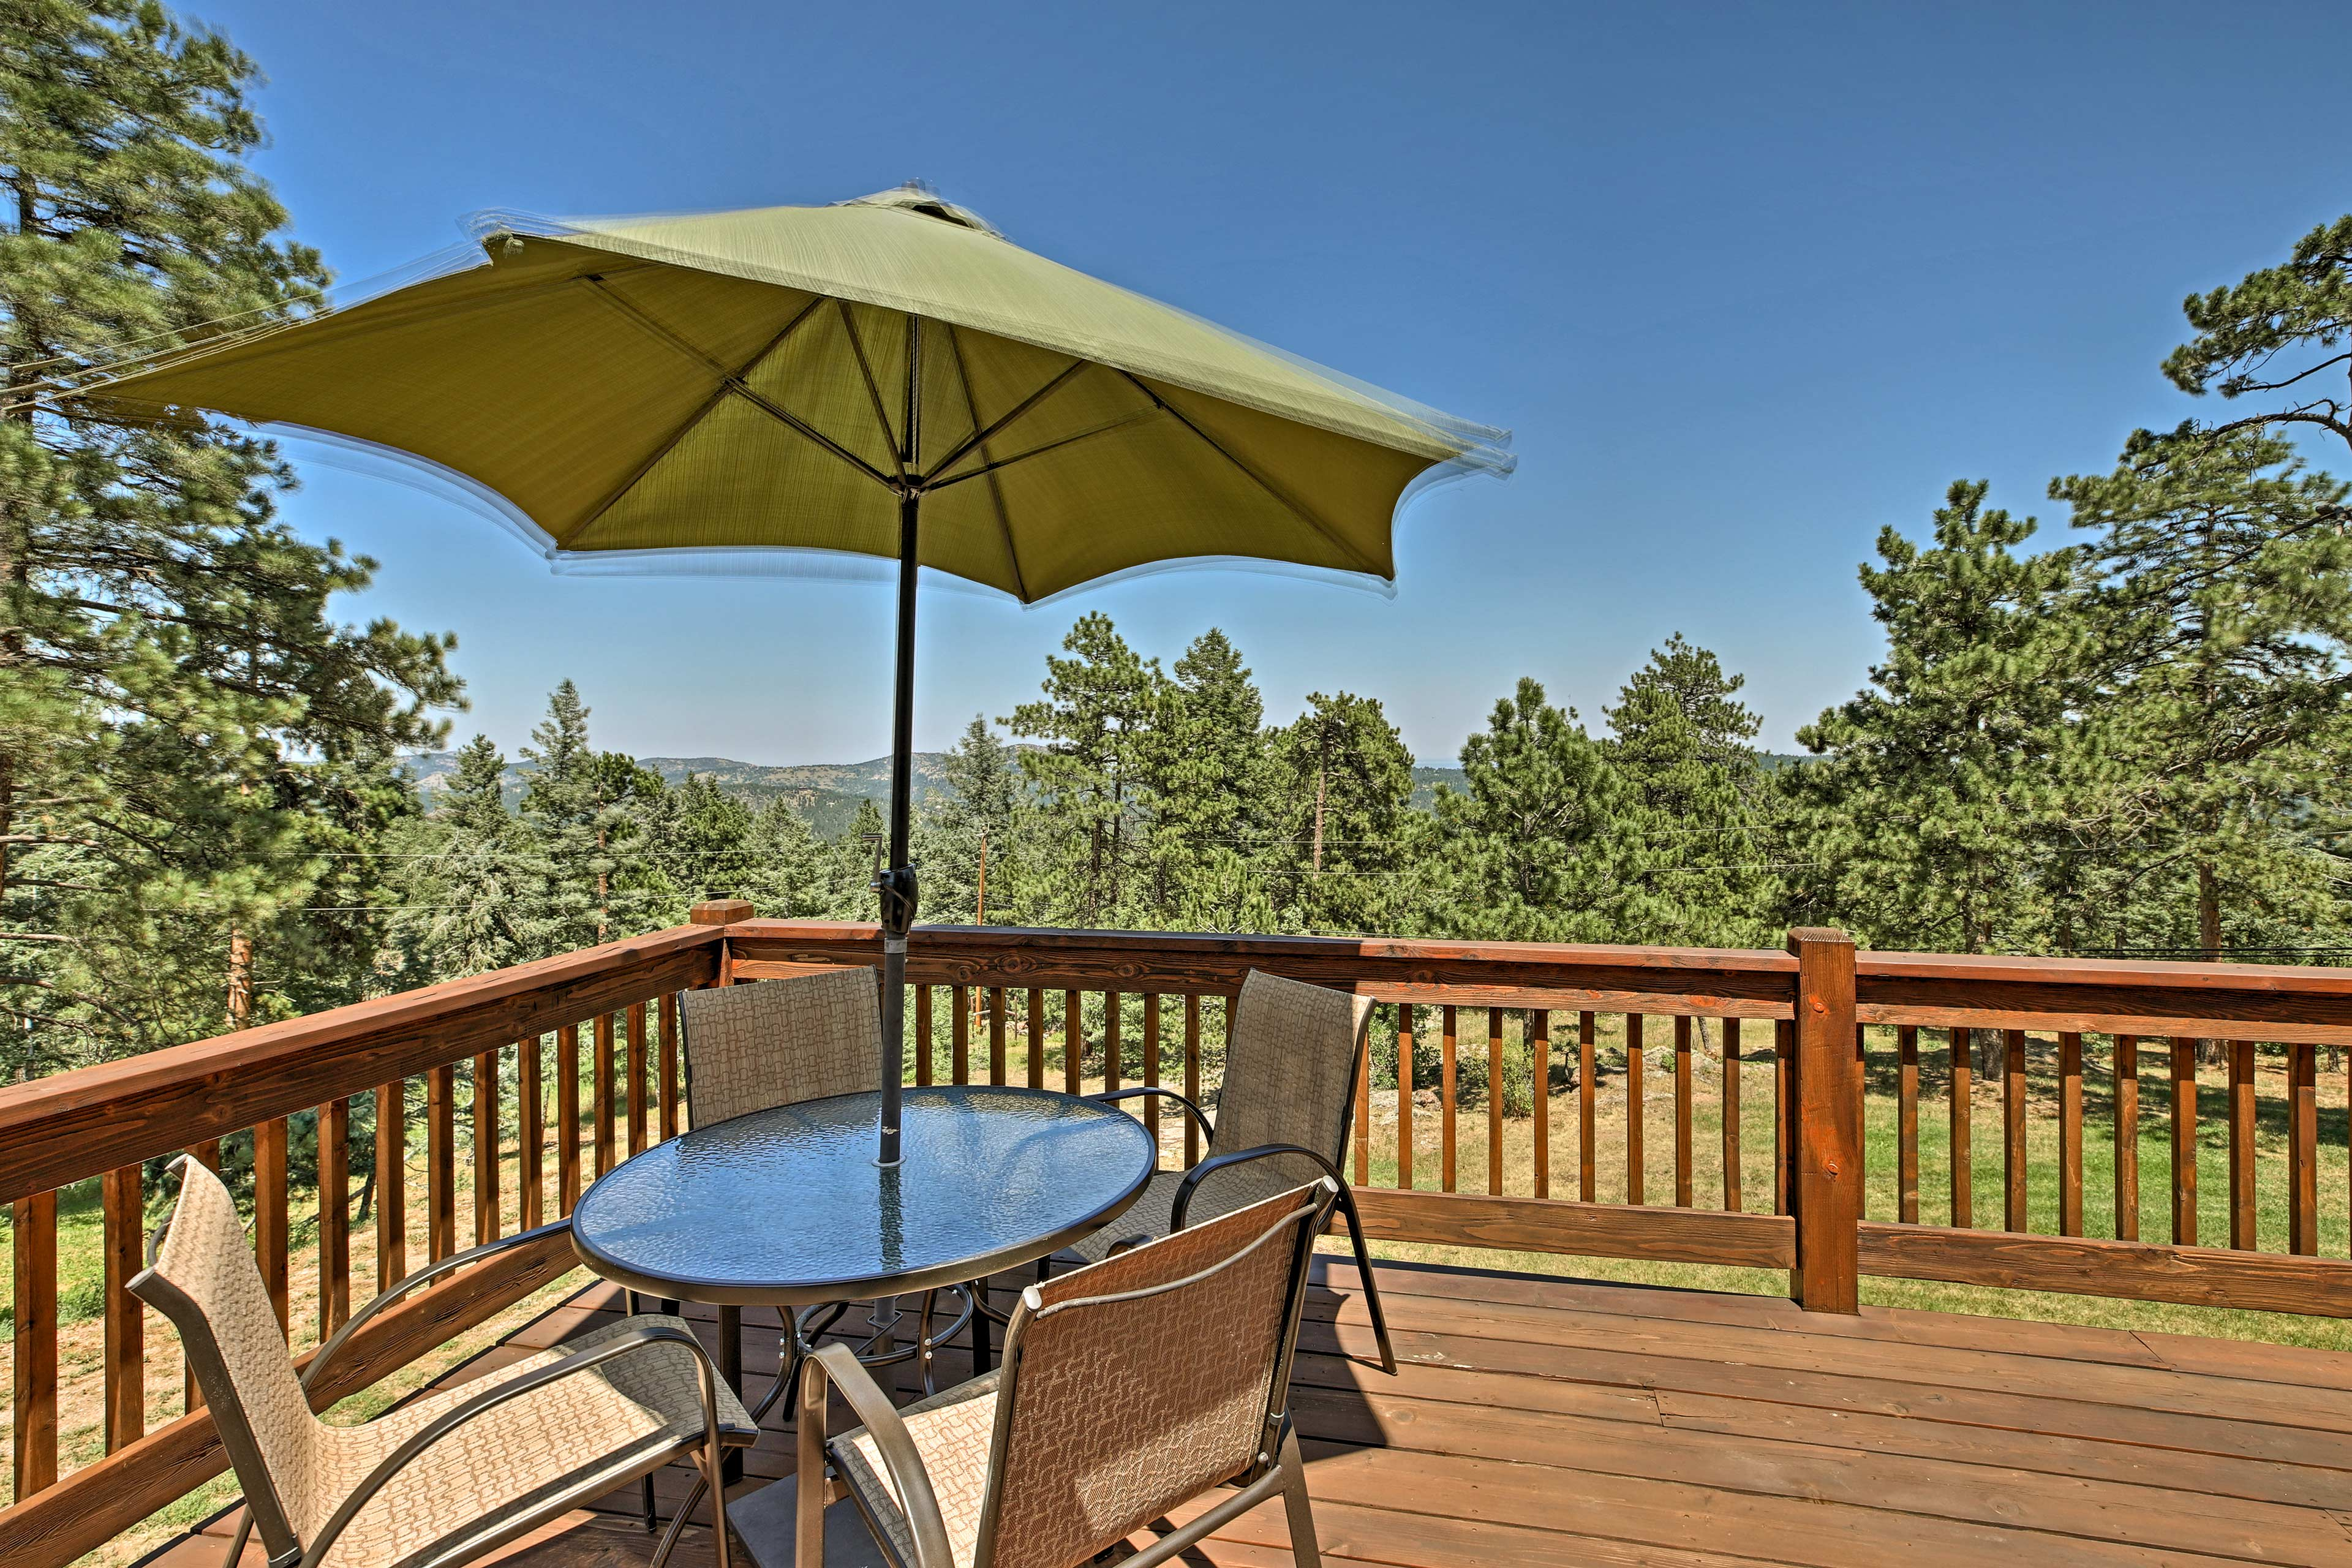 Gaze out at the jaw-dropping views of the mountains.